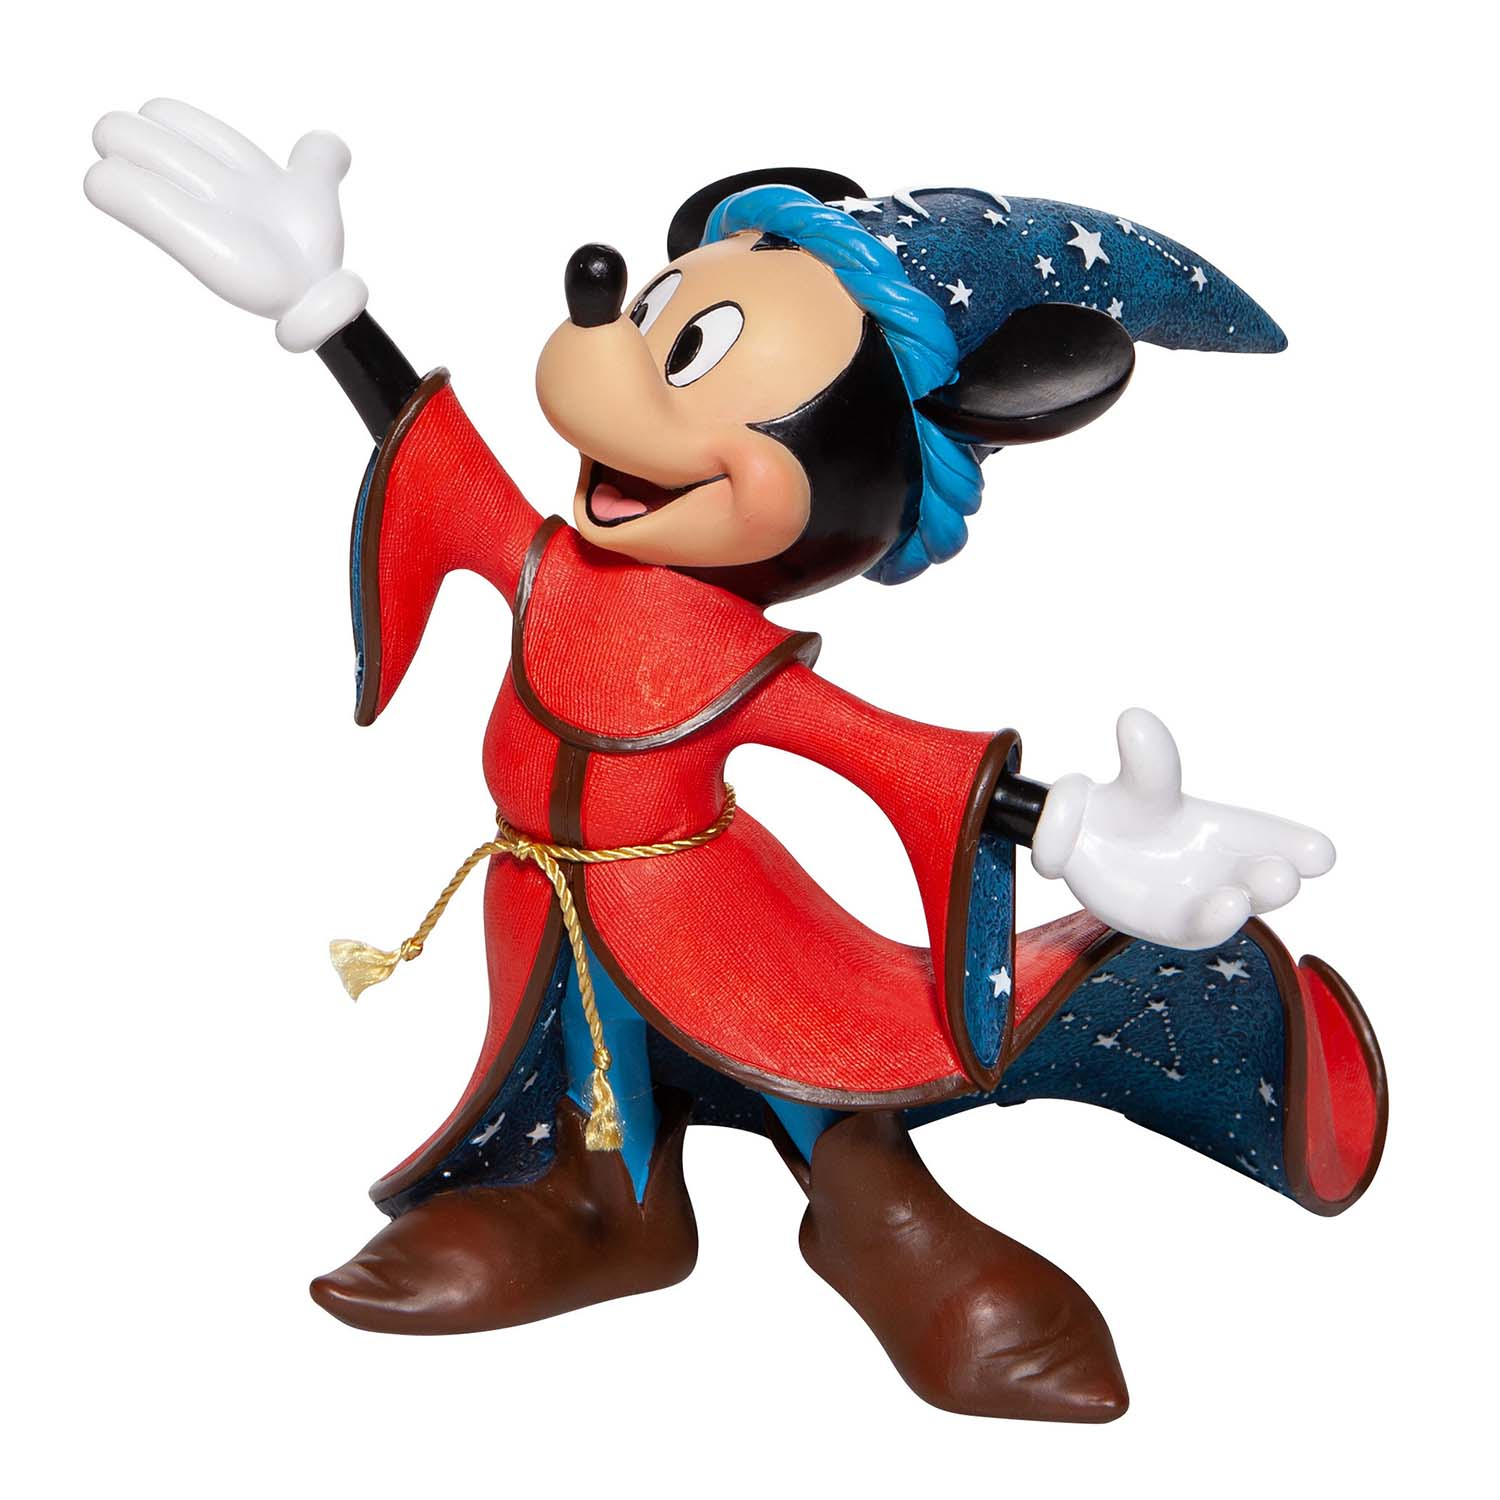 Disney Showcase Collection - 80th Anniversary Sorcerer Mickey